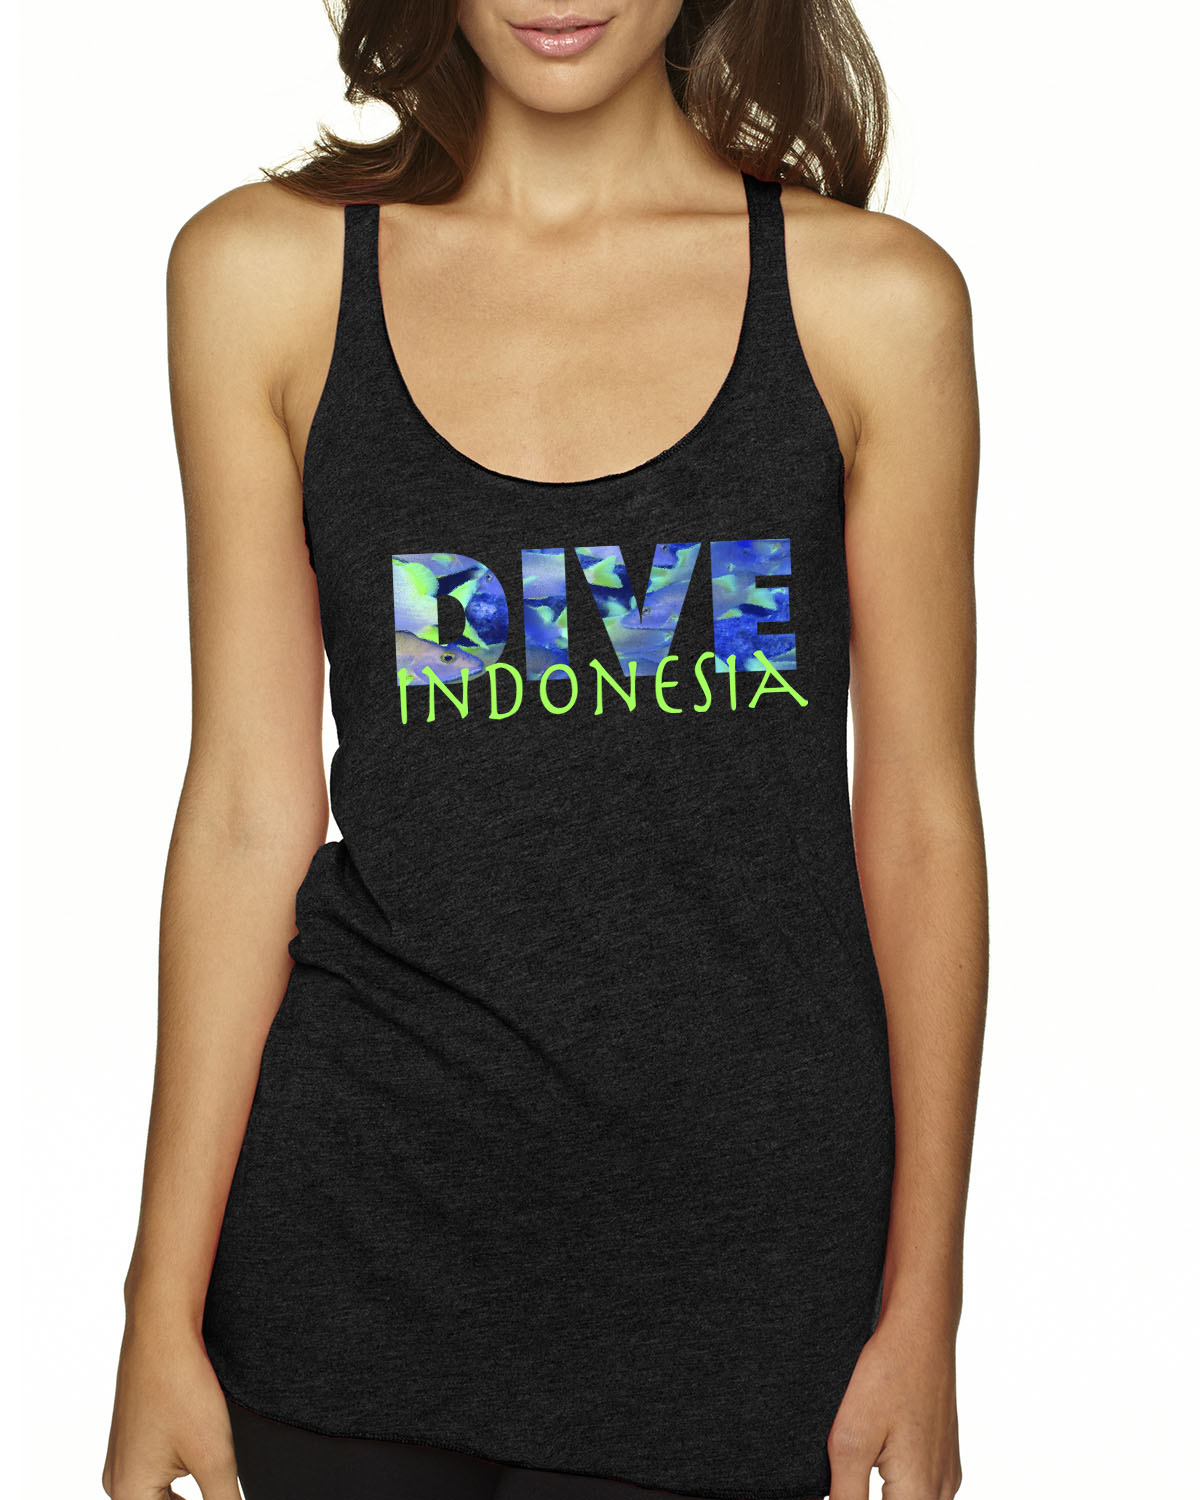 DIVE Indonesia Racer-back tank top (Vintage Black)